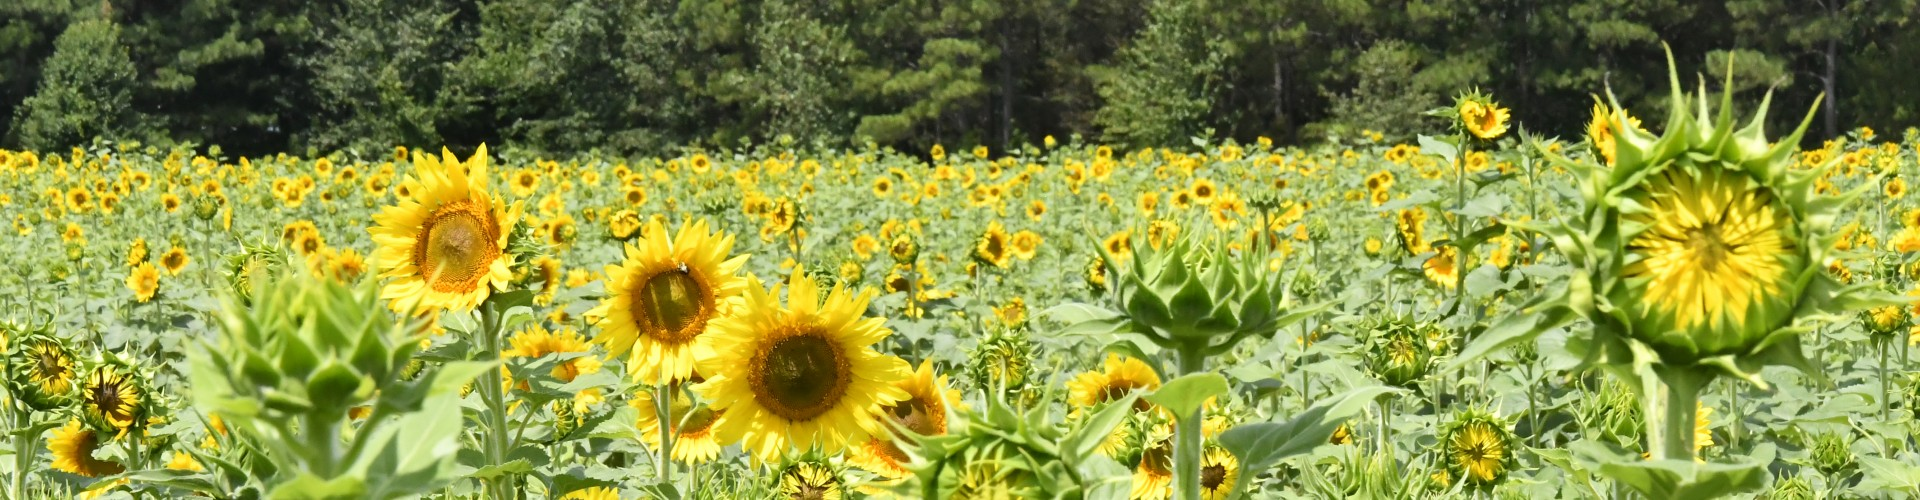 Field of sunflowers at Dix Park